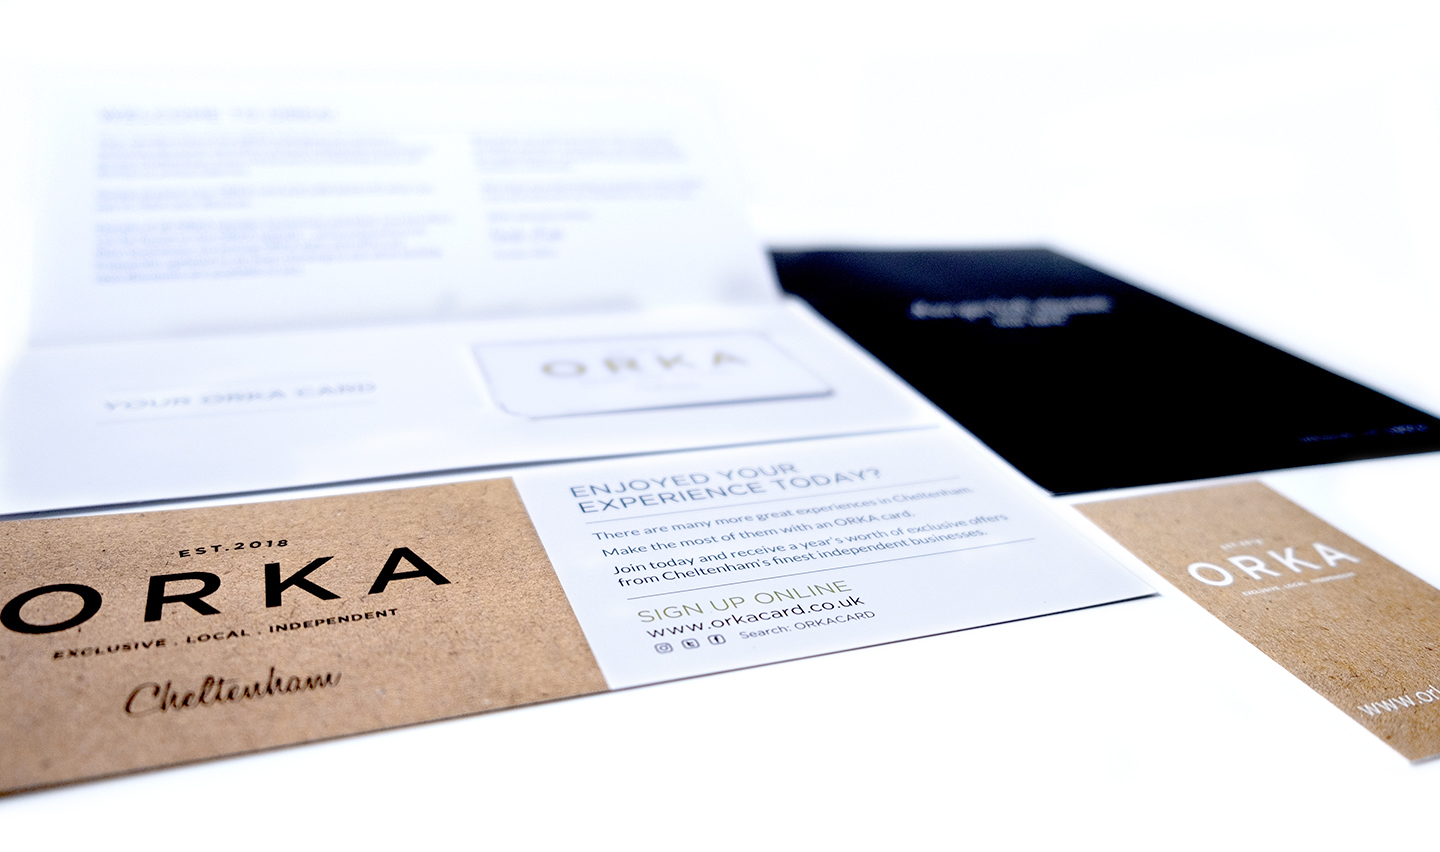 http://rusyndesign.co.uk/wp-content/uploads/2021/02/ORKA-01-1.jpg